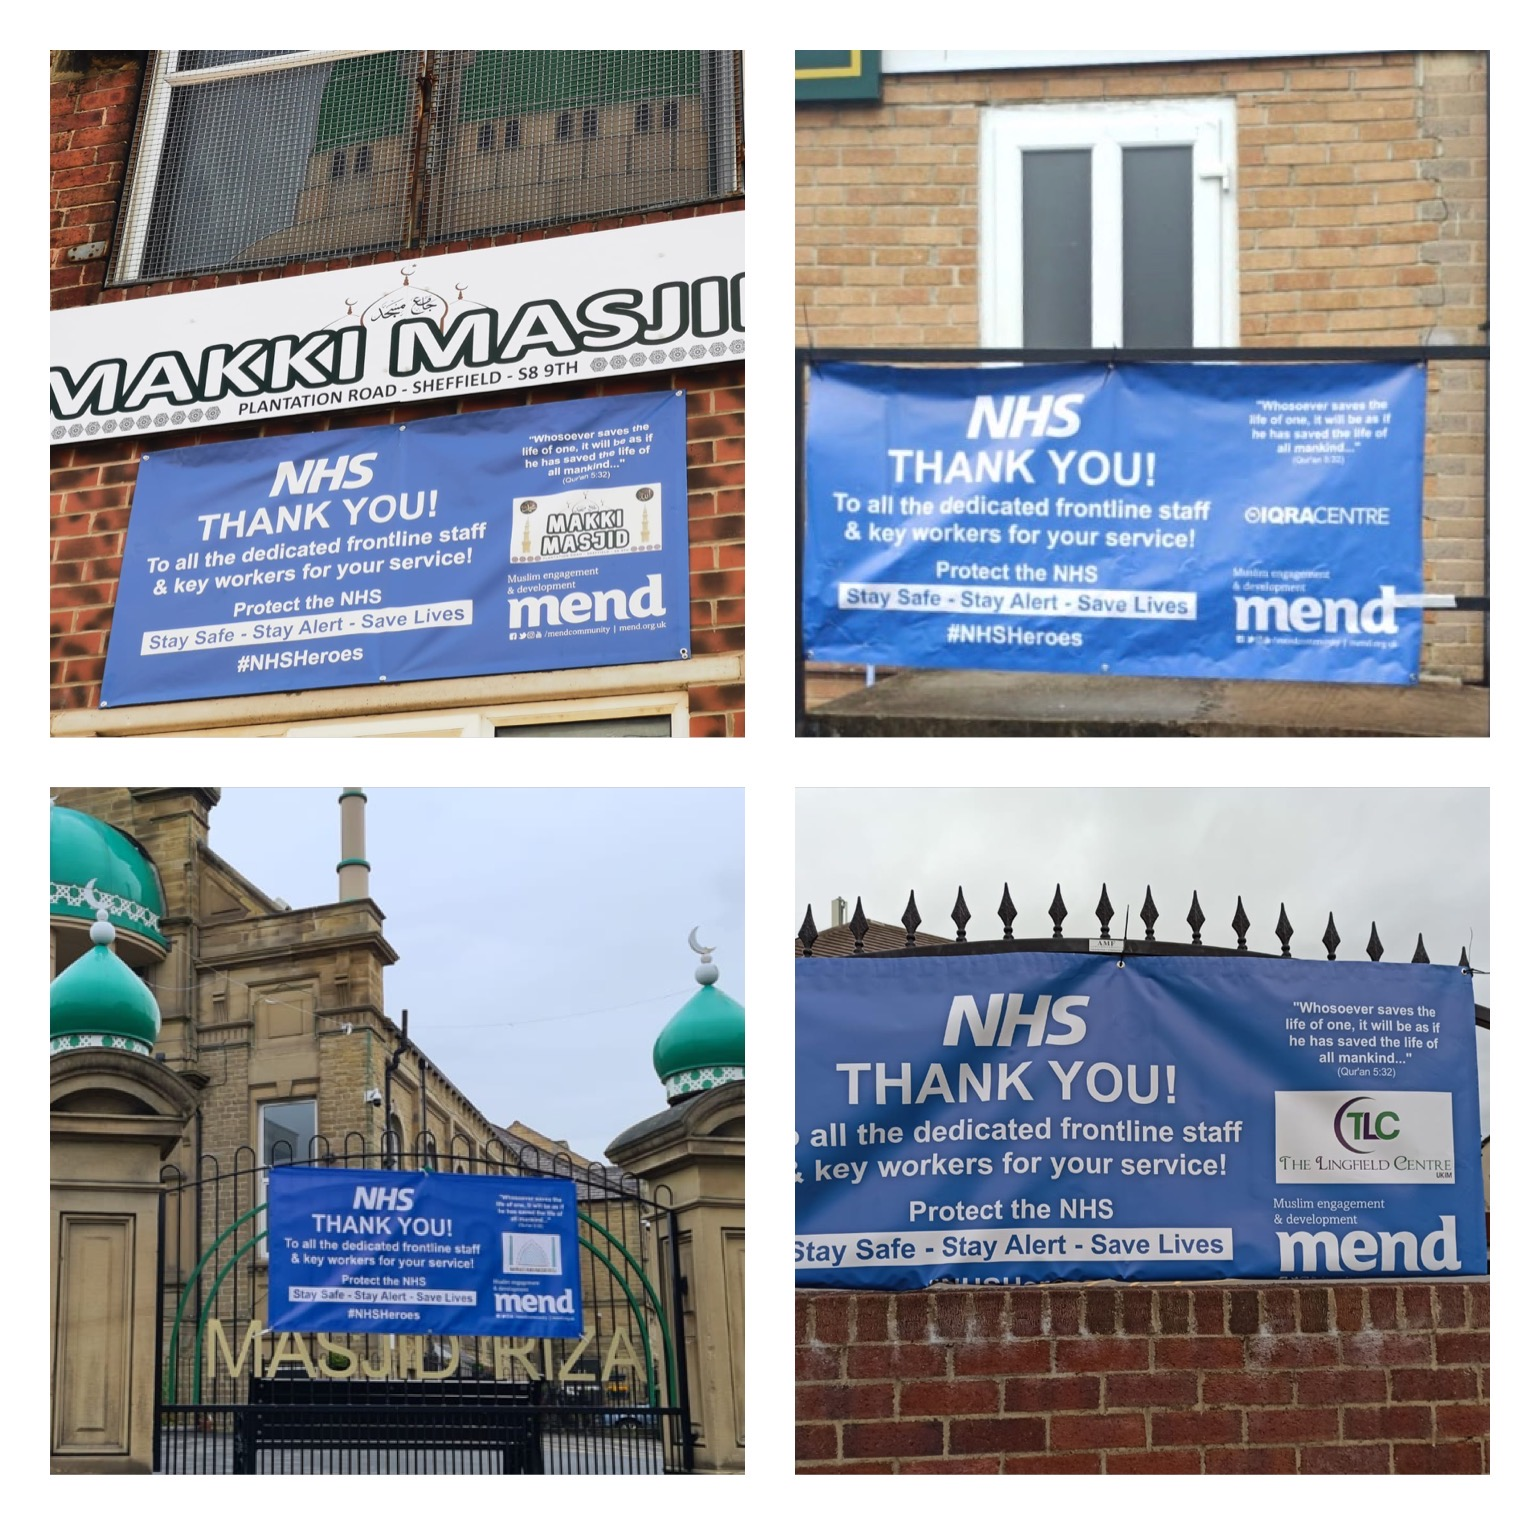 Yorkshire Mosques give their thanks to the NHS!